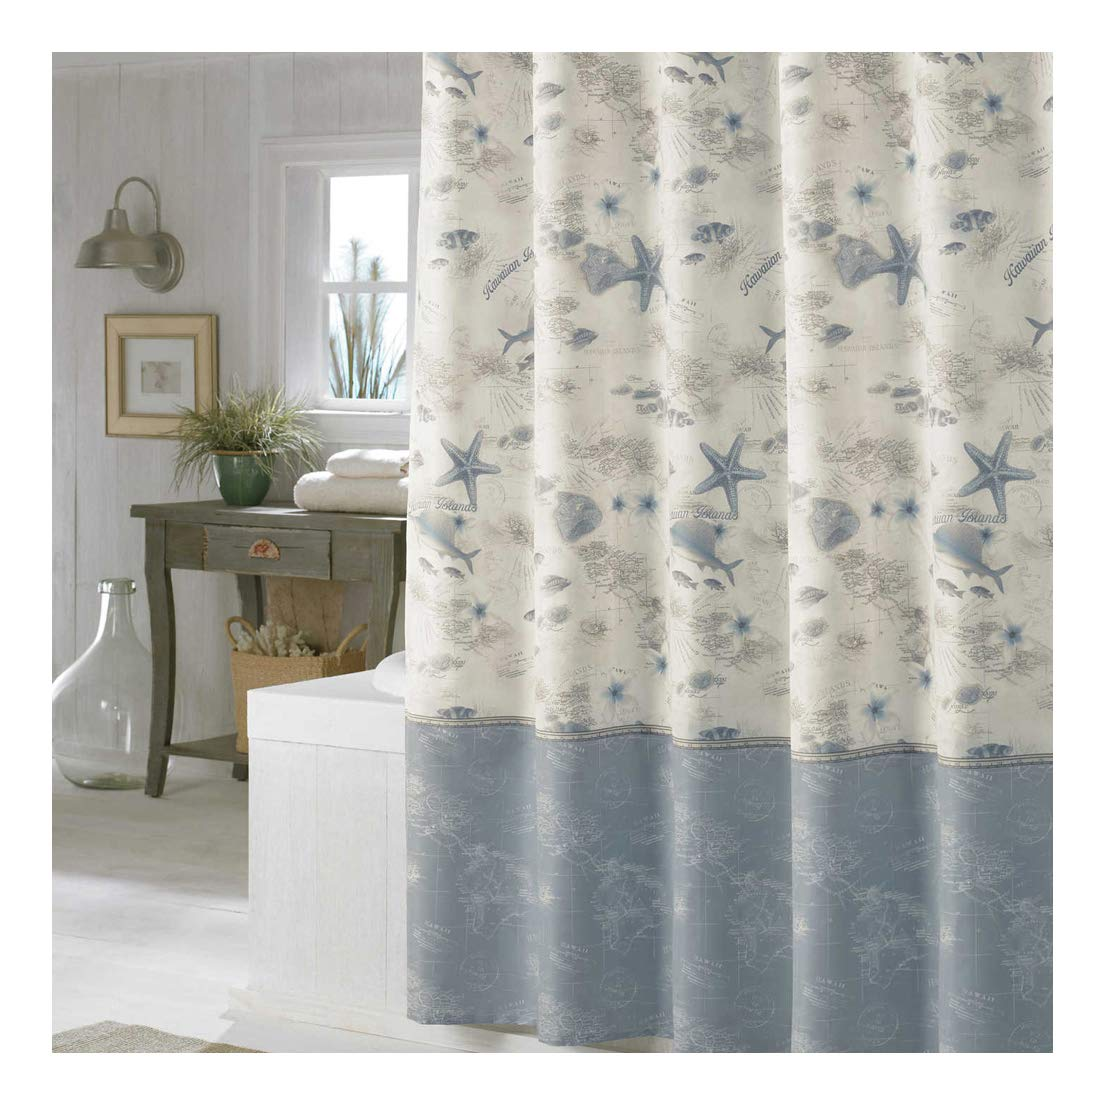 DS BATH Madamoiselle Seashell Shower CurtainWaterproof Polyester Fabric CurtainsOcean Decorative Curtain For BathroomMildew Resistant